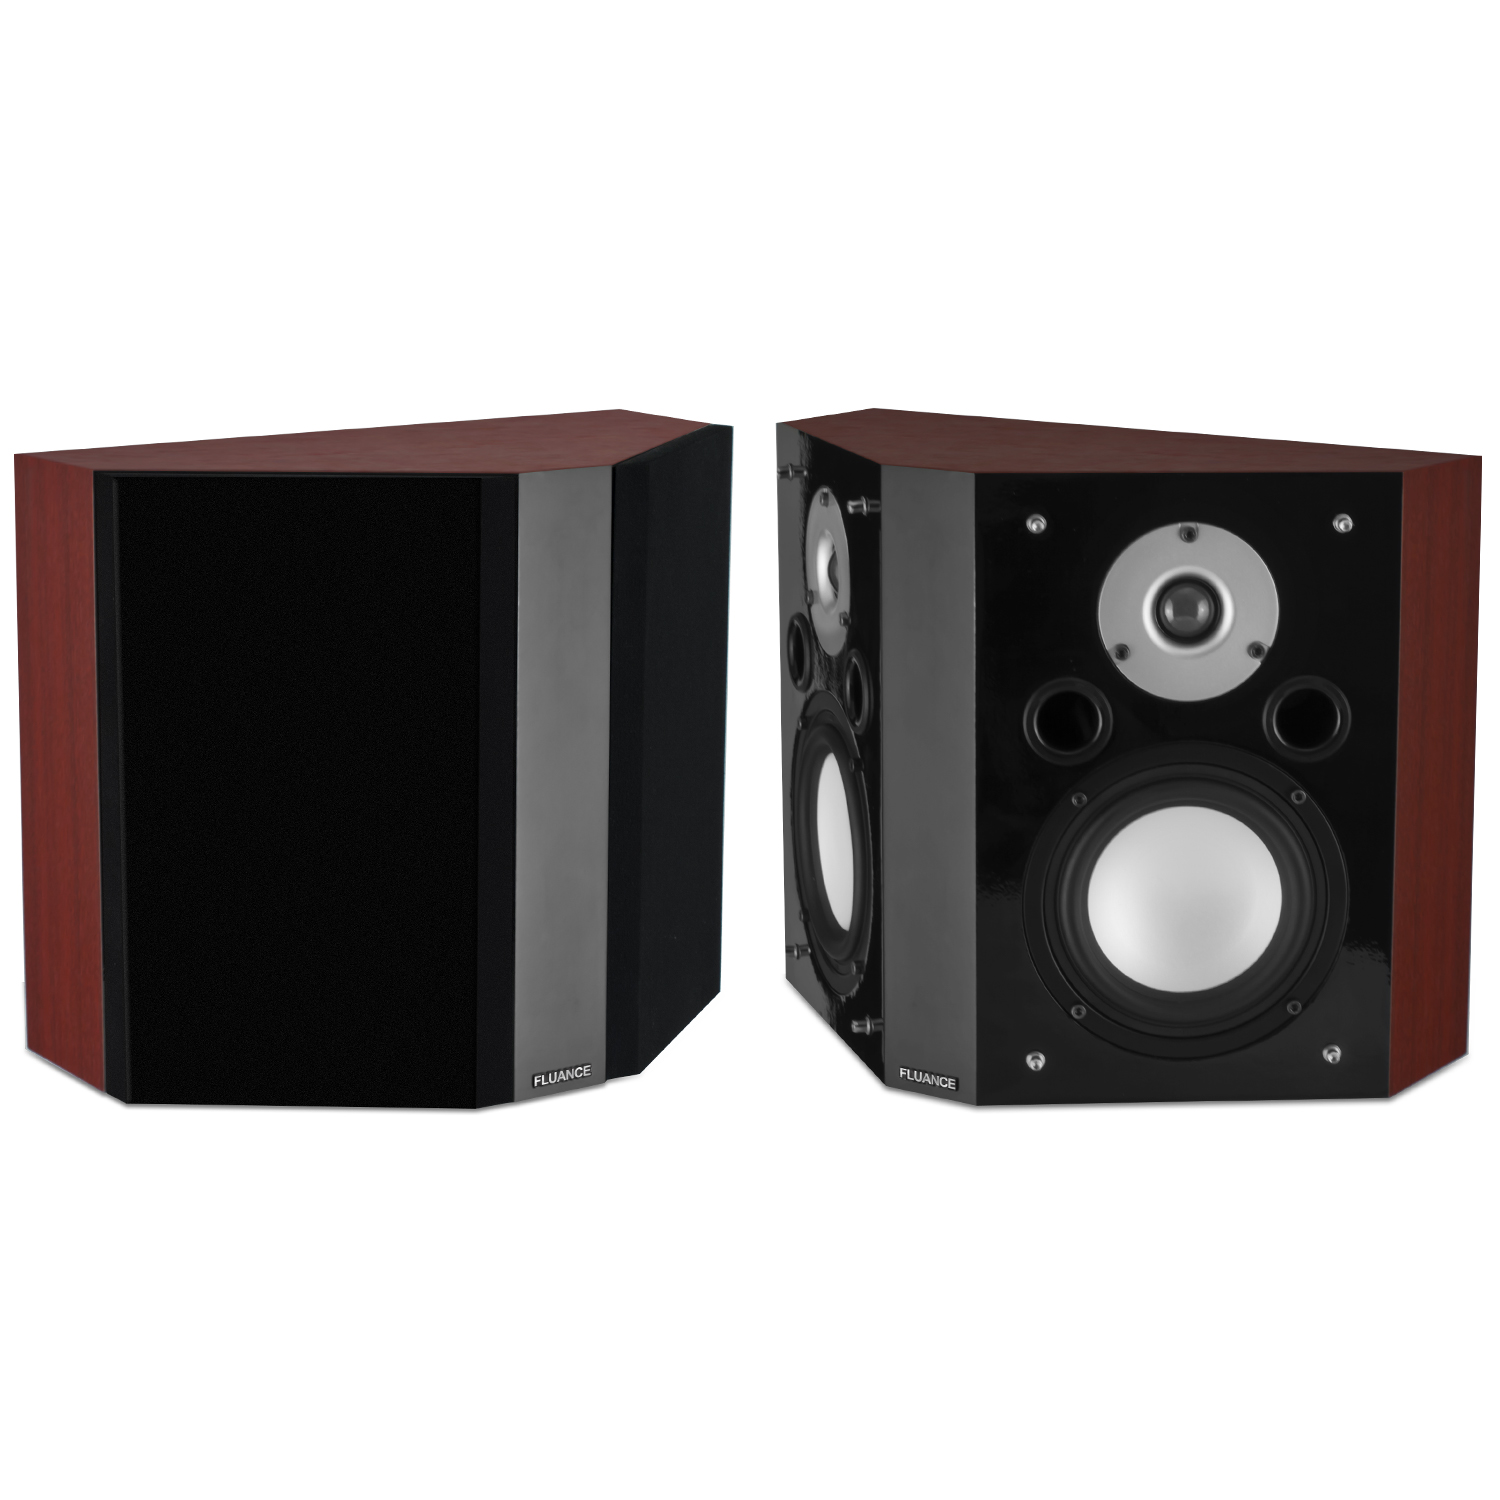 Fluance XLBP bipolar surround speaker pair